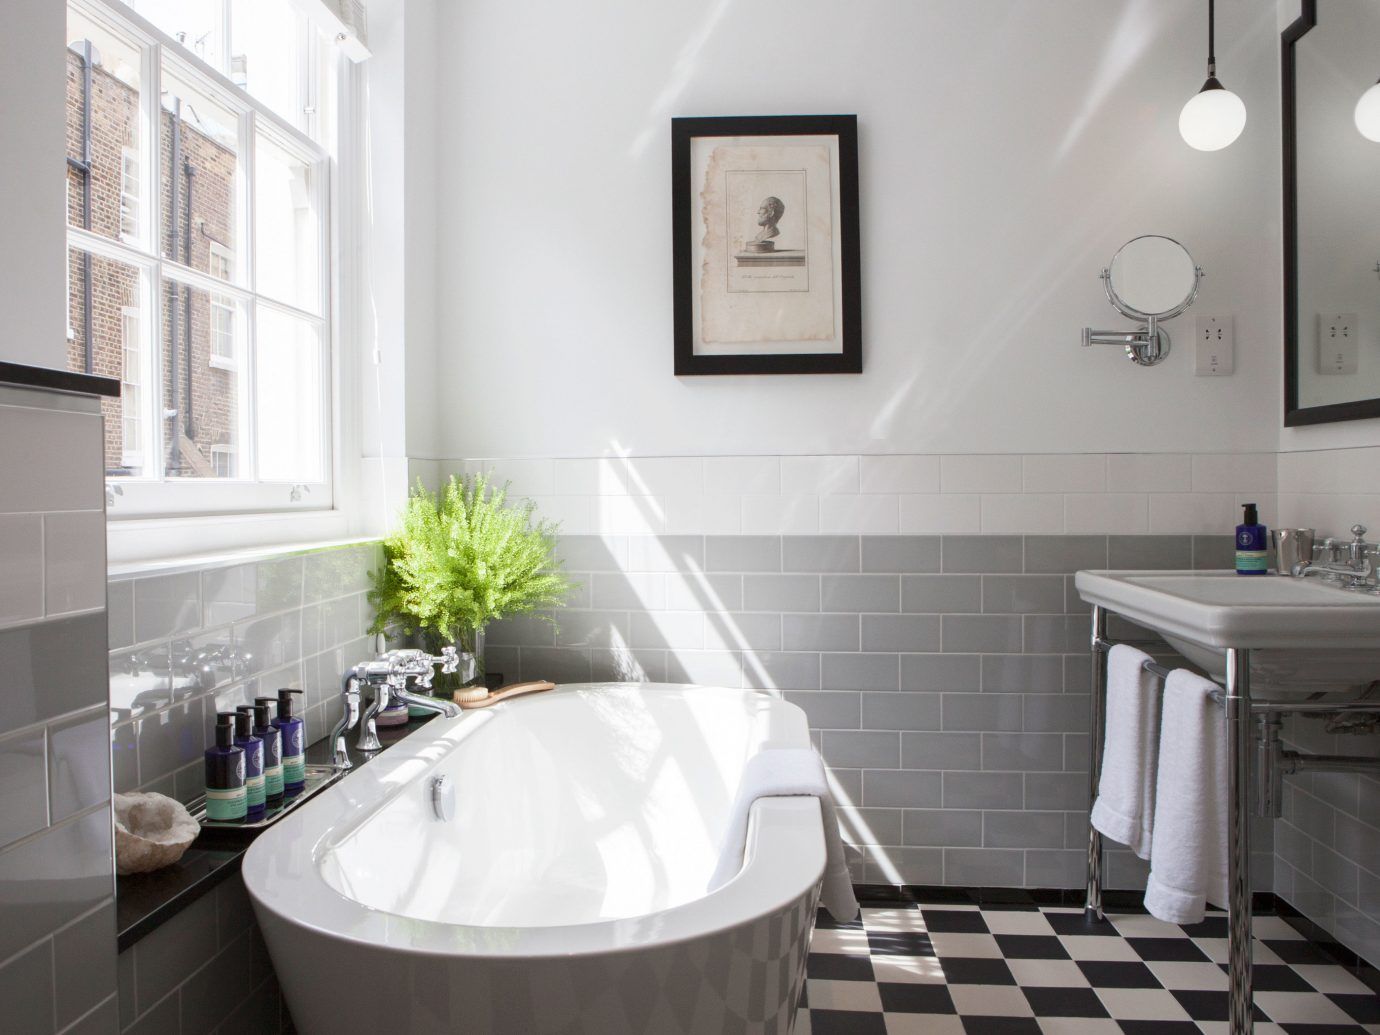 Budget Hotels London wall indoor bathroom floor room property window home white black interior design cottage bathtub estate Design tub sink real estate flooring apartment bidet toilet tile Bath tiled decorated